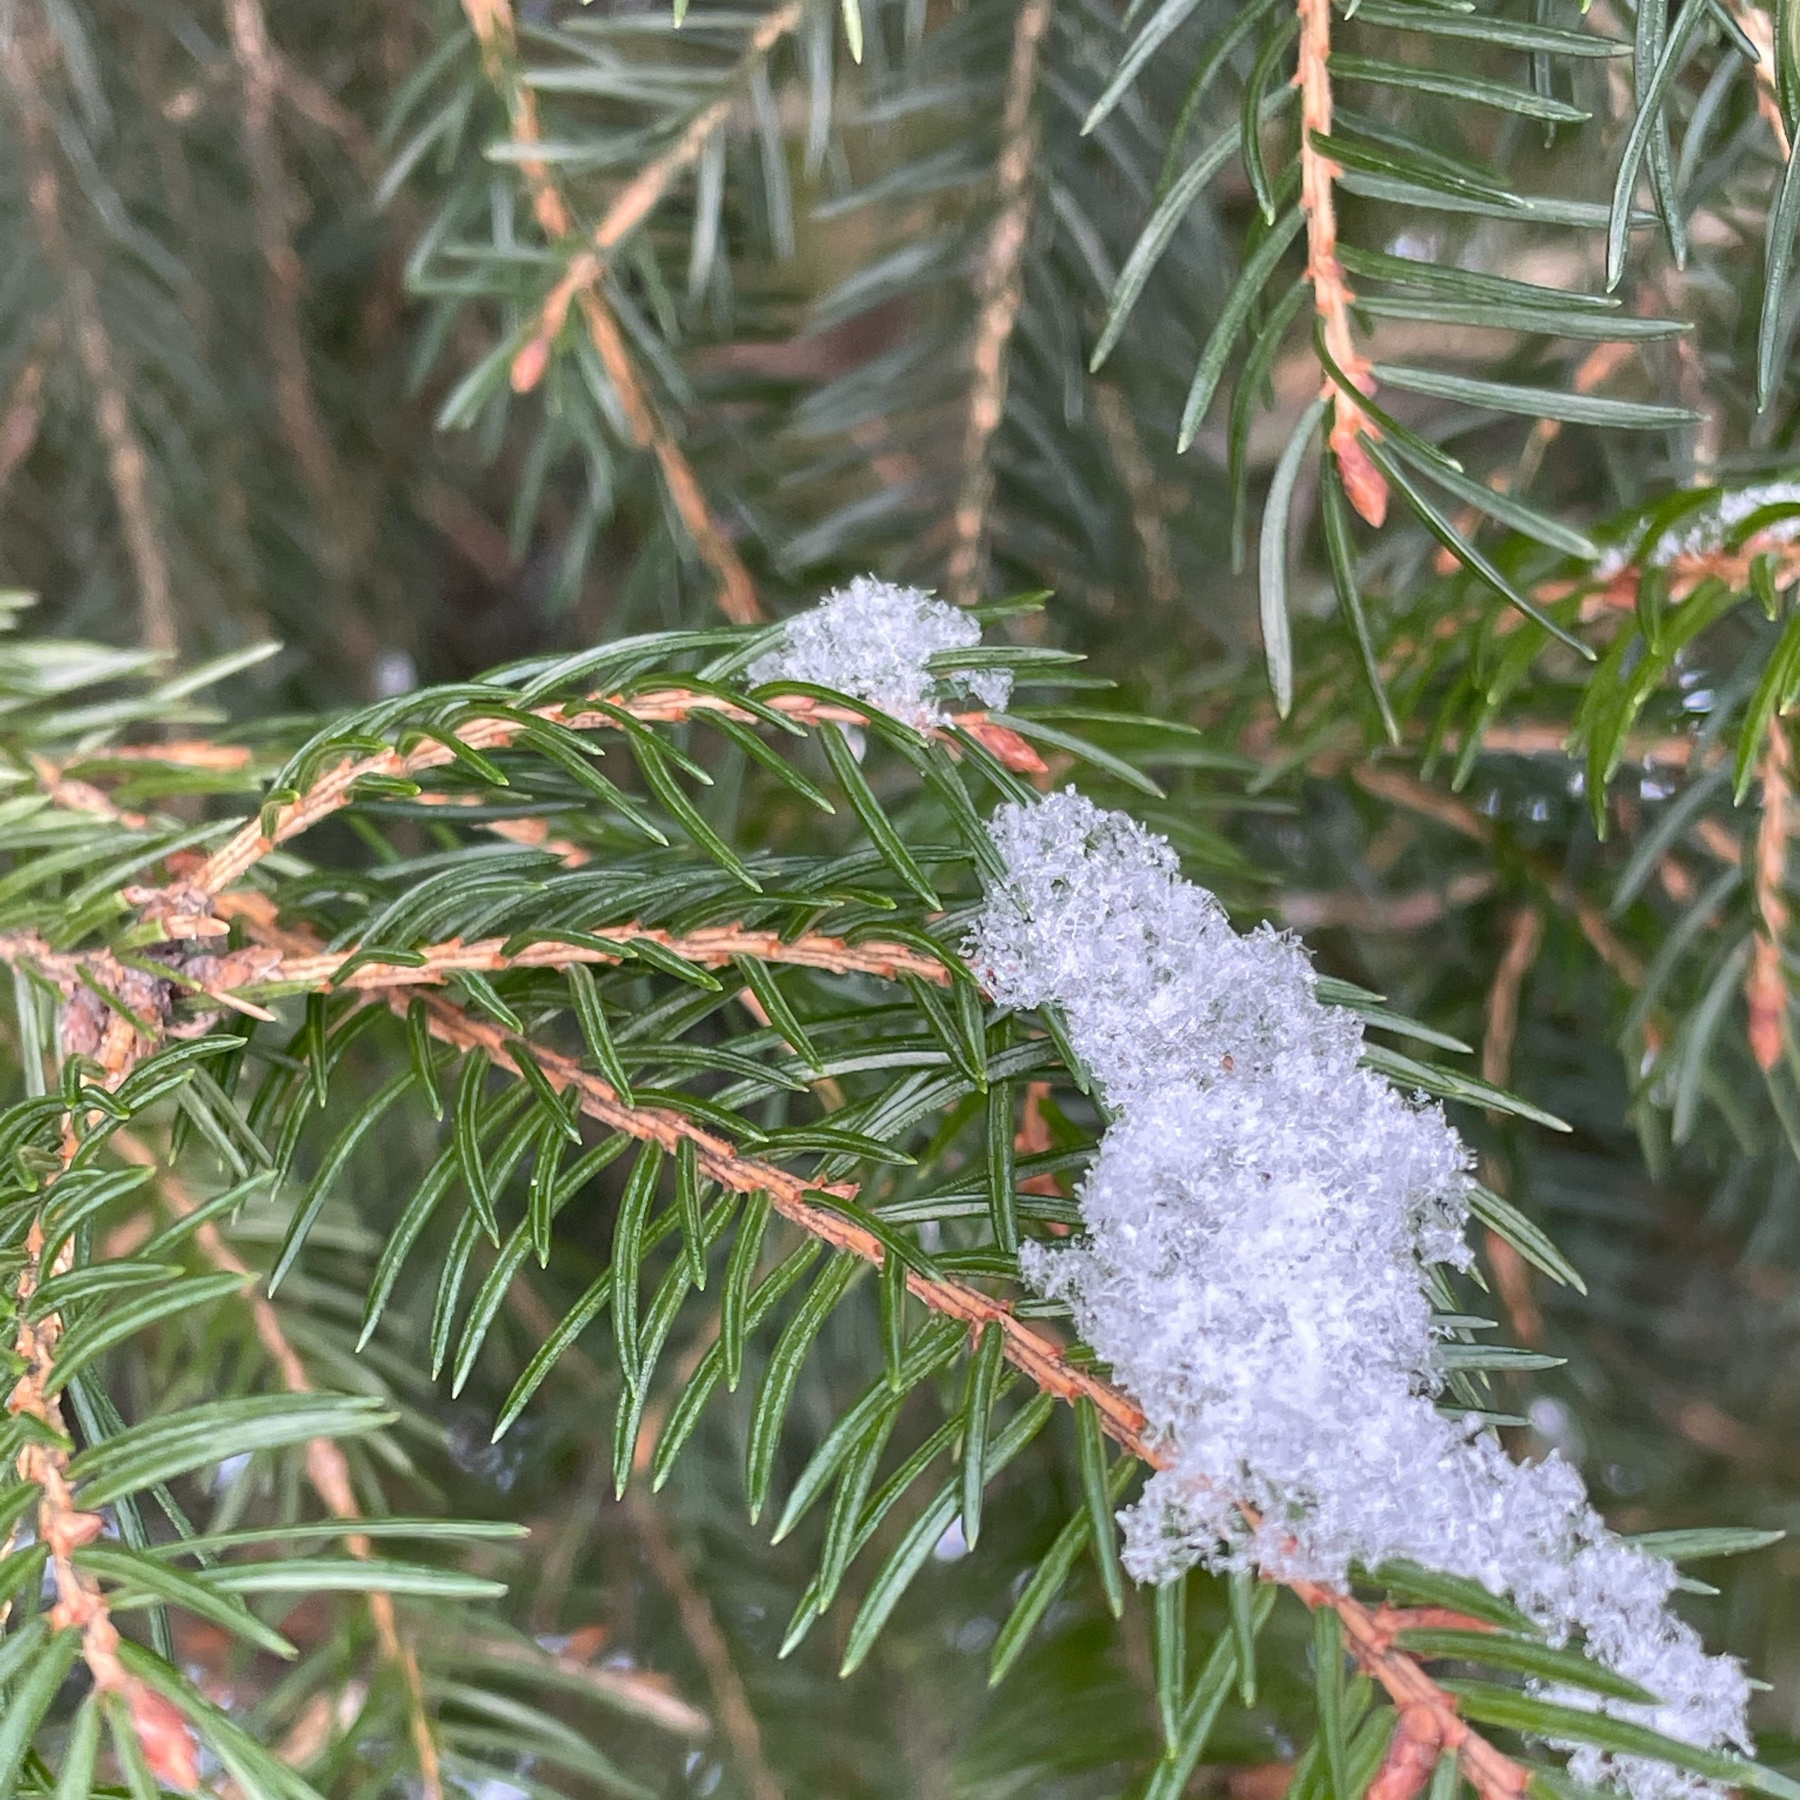 spruce tree needles and some icy snow on top of them